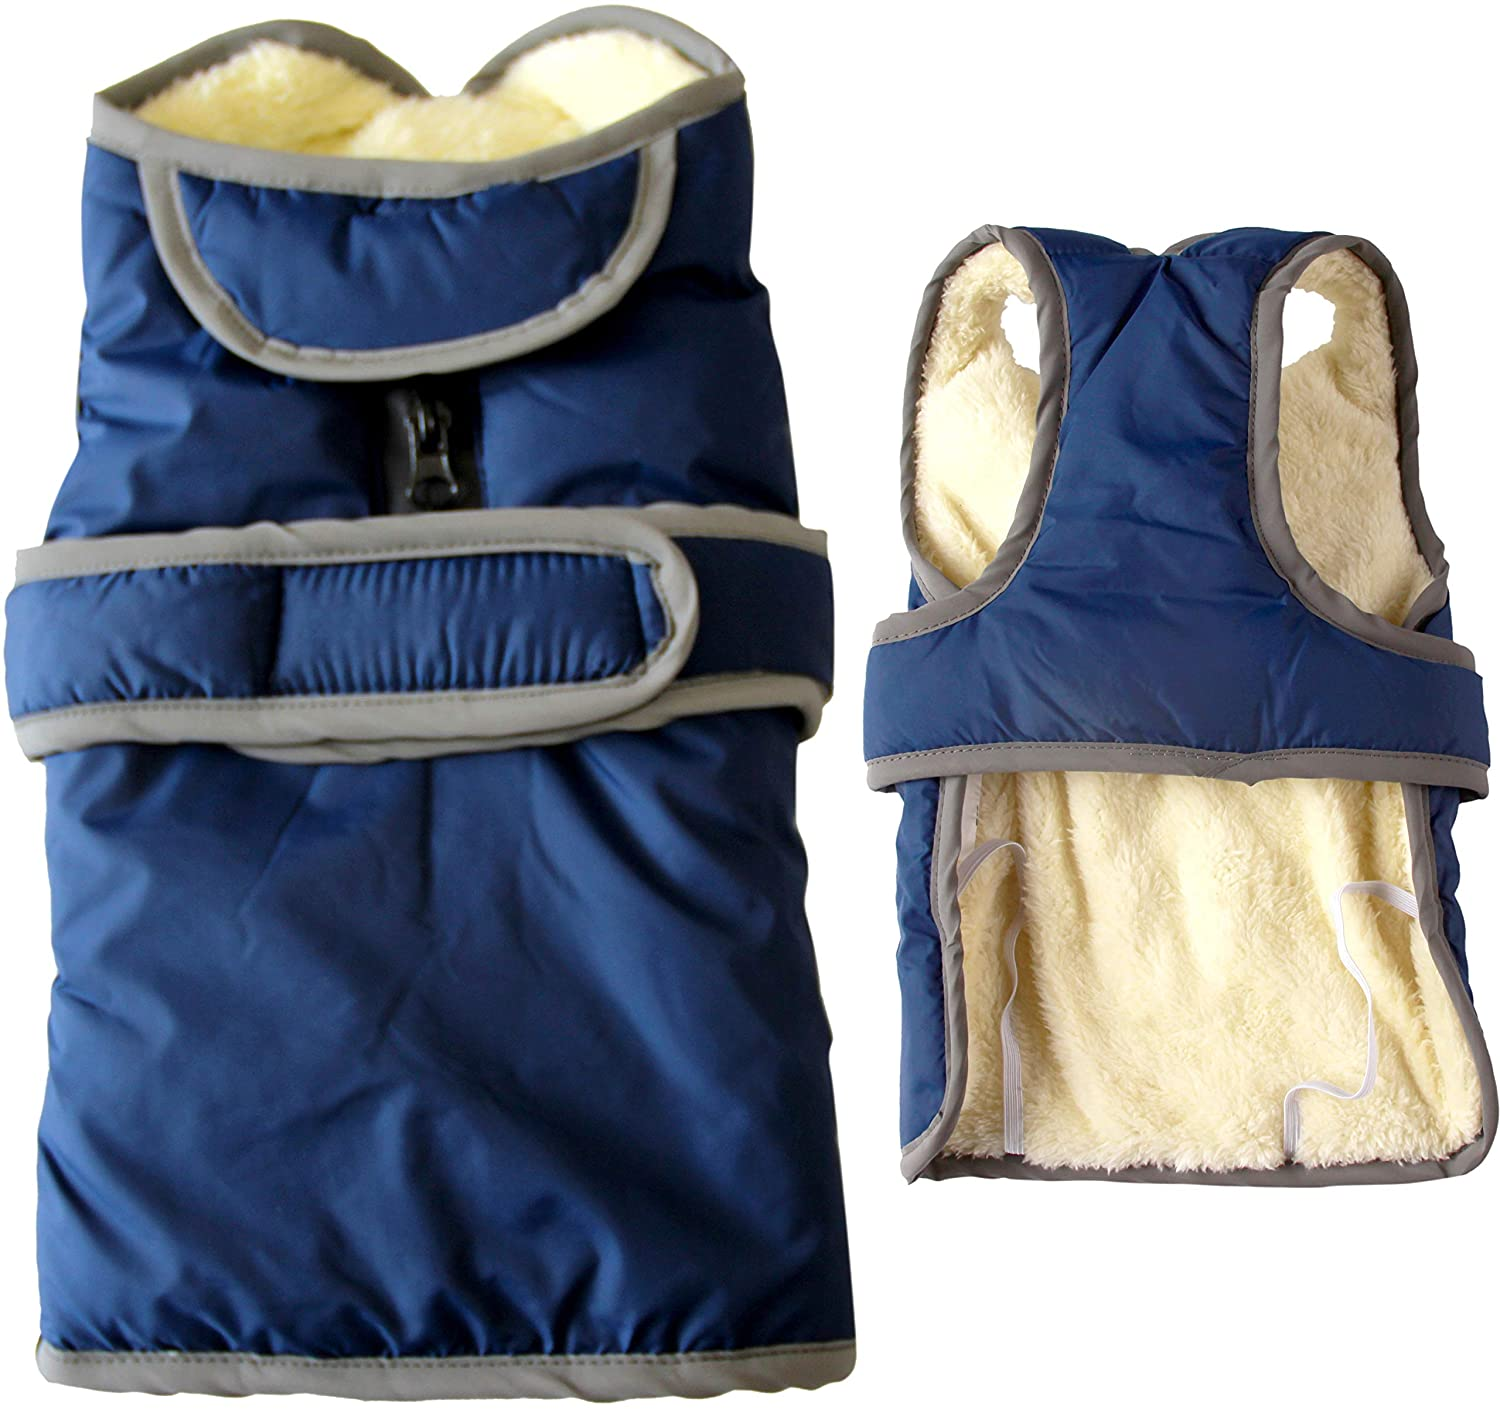 bluee M bluee M vecomfy Small Dog Jackets with Semicircular Lapel,Winter Super Warm Fleece Soft Puppy Coats bluee,M